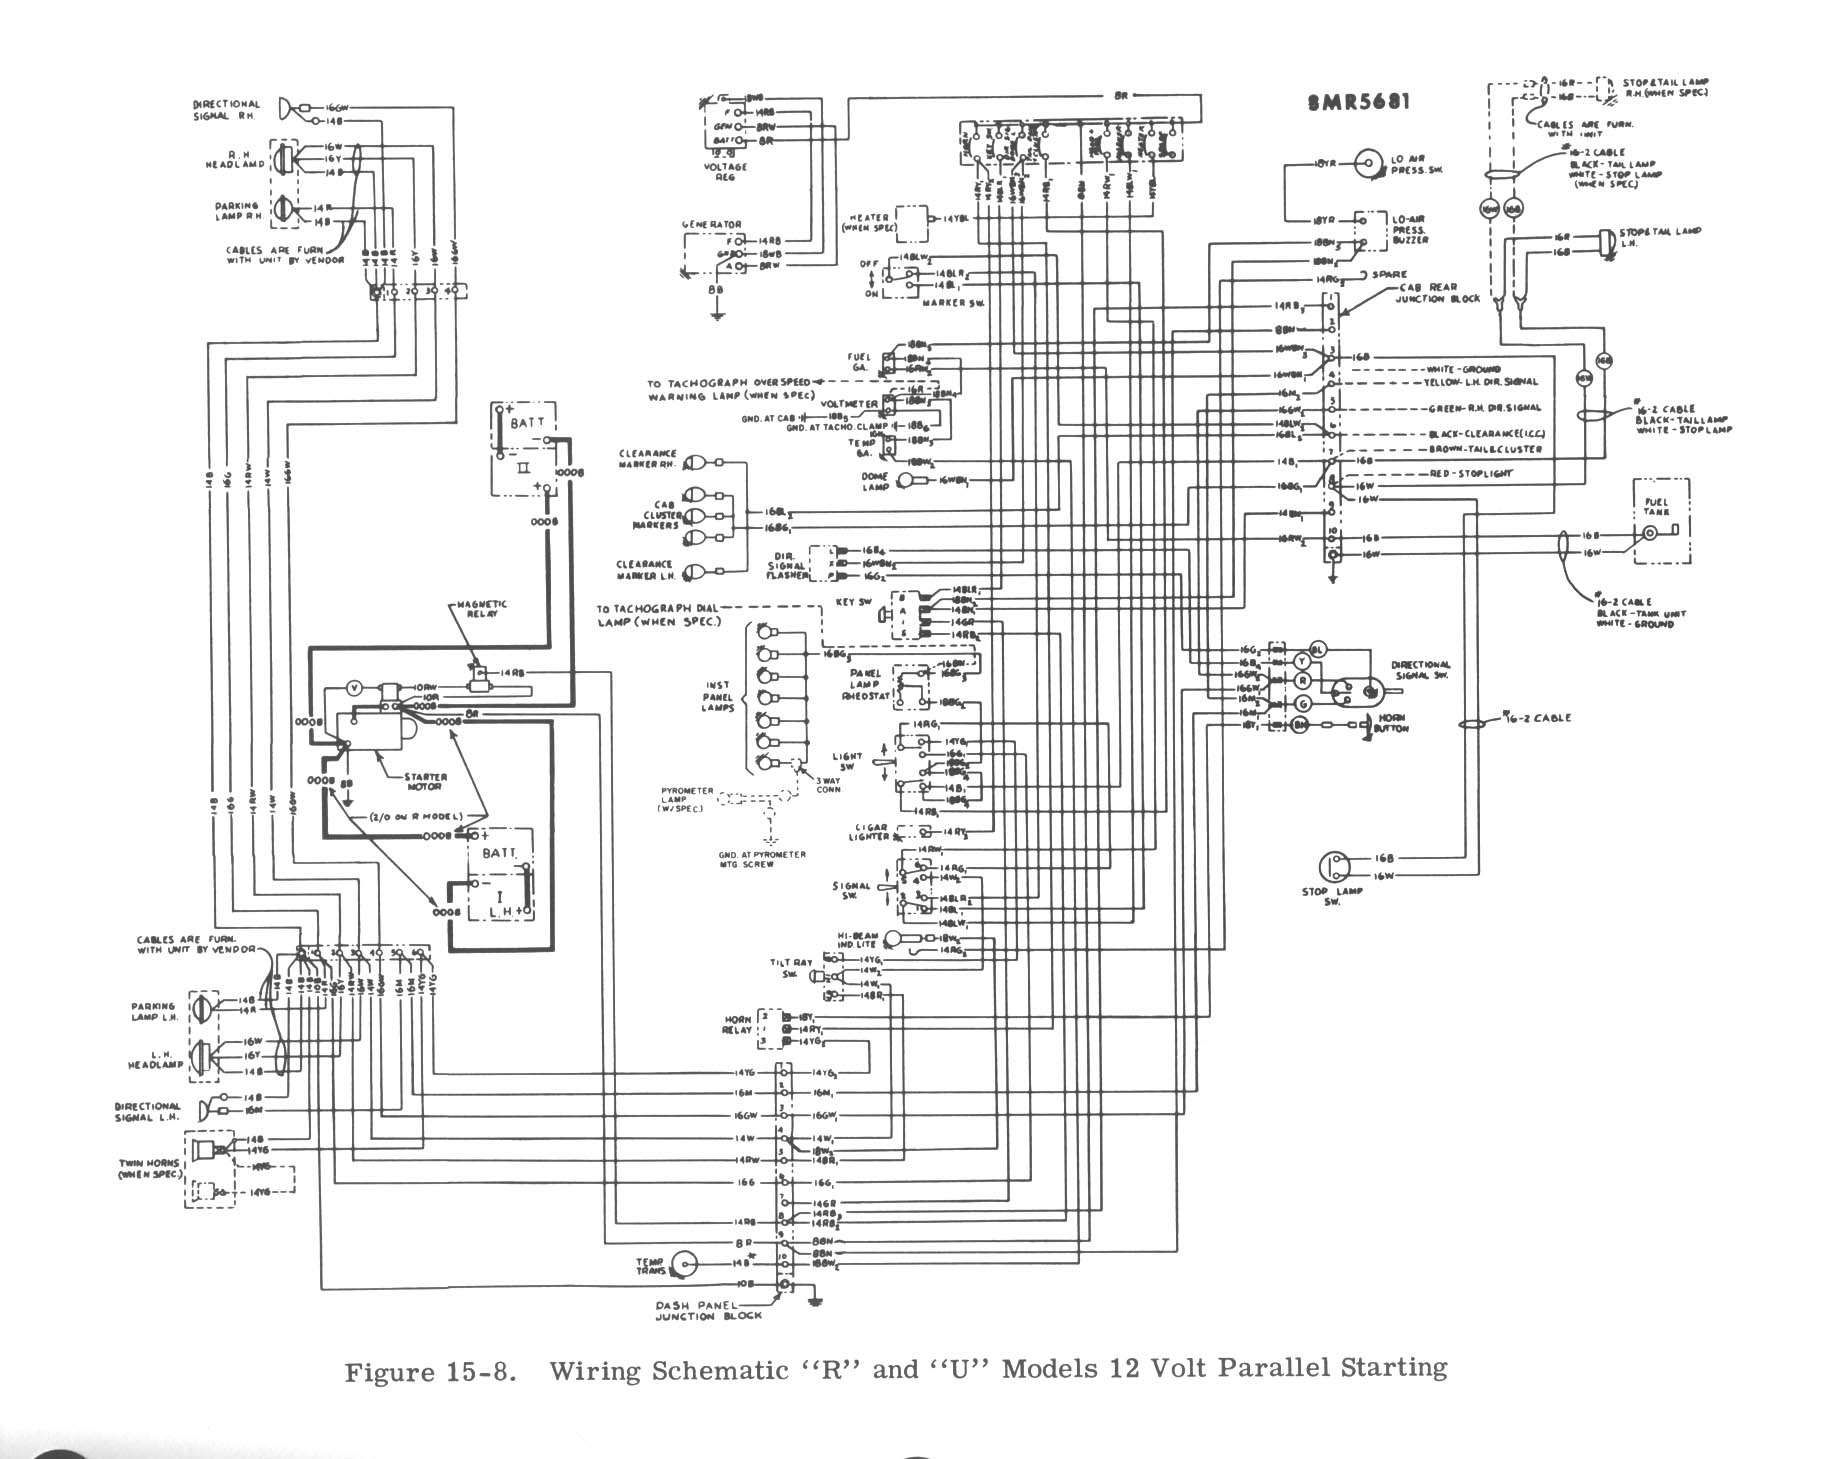 2000 Mack Truck Wiring Diagram - Wiring Diagram Data Mack Truck Wiring Diagram For on 2001 dodge truck wiring diagram, mack fuse box diagram, 2006 international 4300 truck wiring diagram, eaton fuller transmission parts diagram,